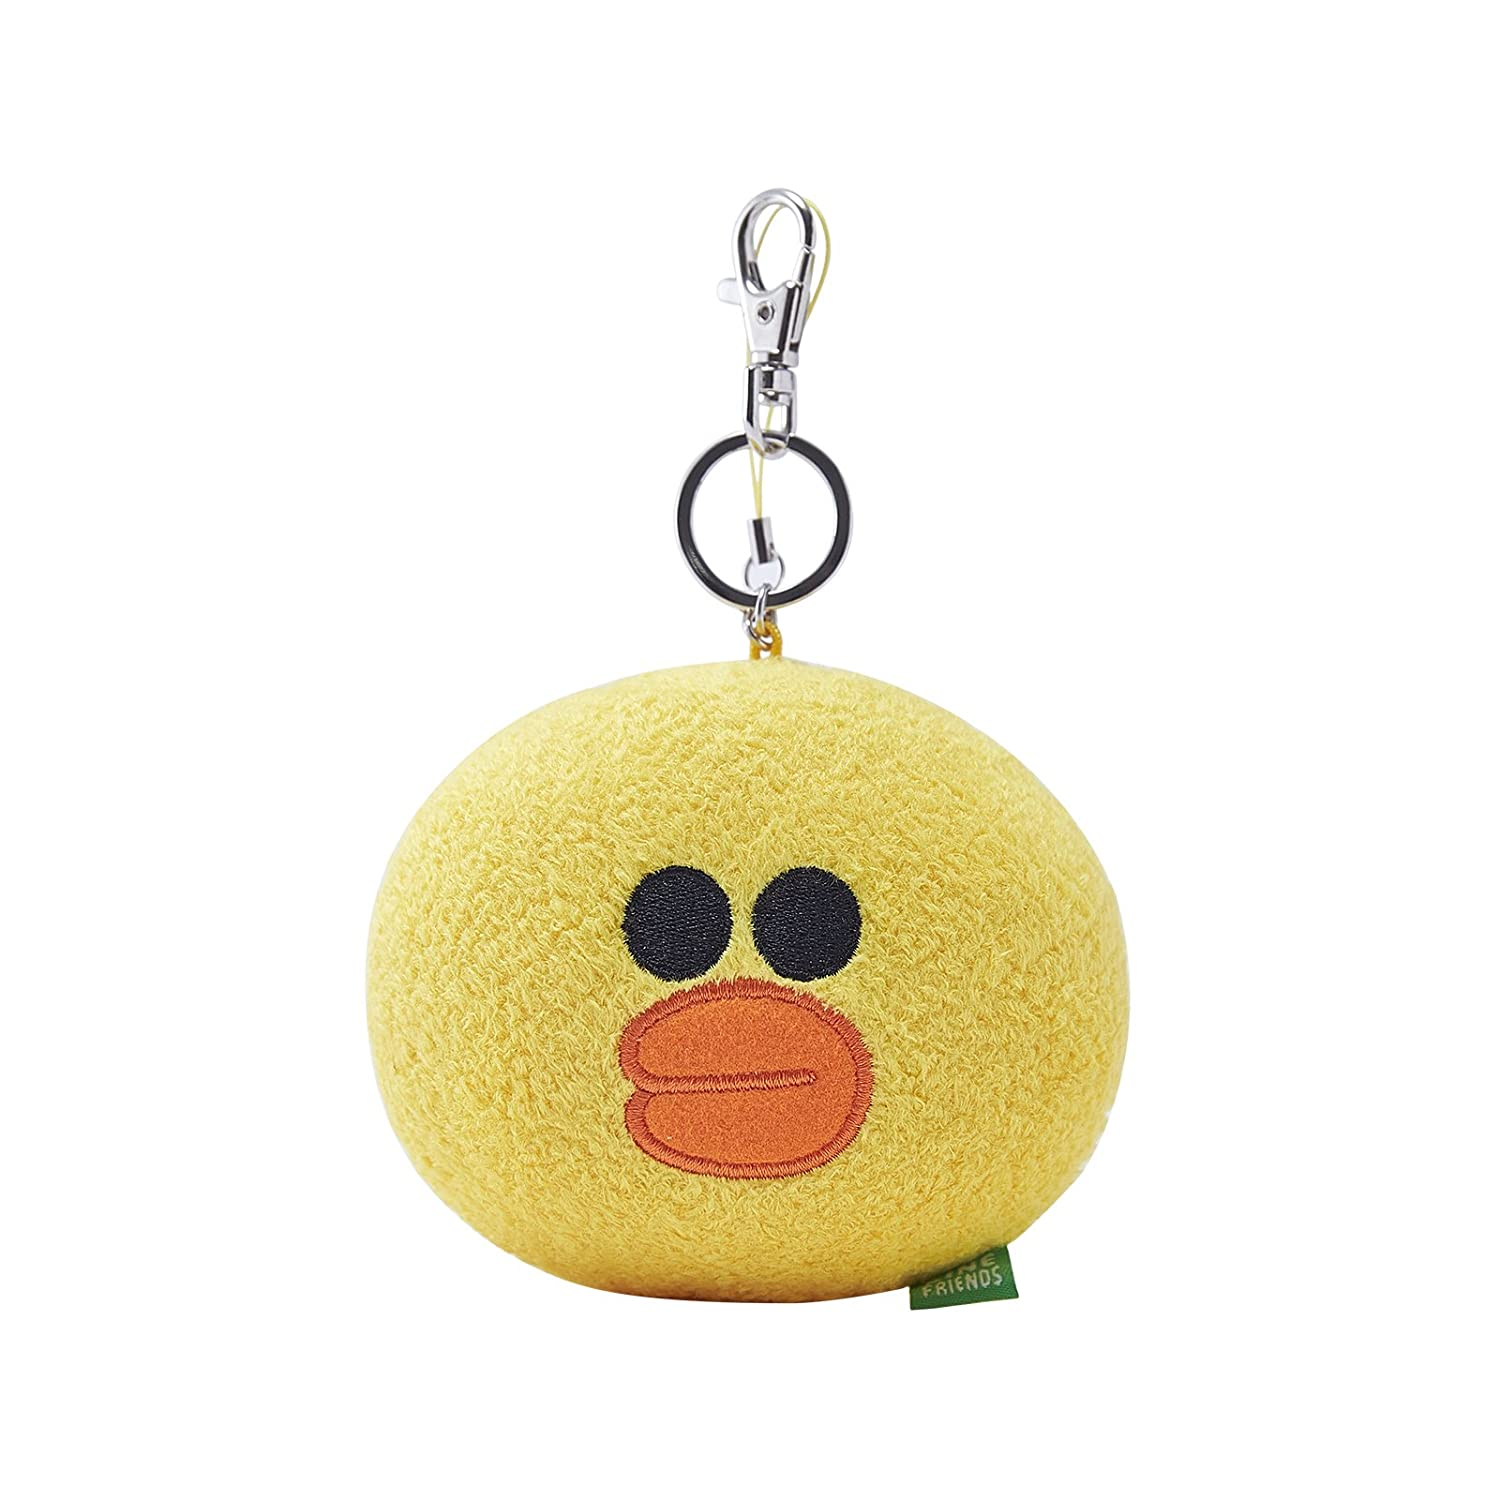 LINE FRIENDS Sally Face Keyring Chain With Plush Doll